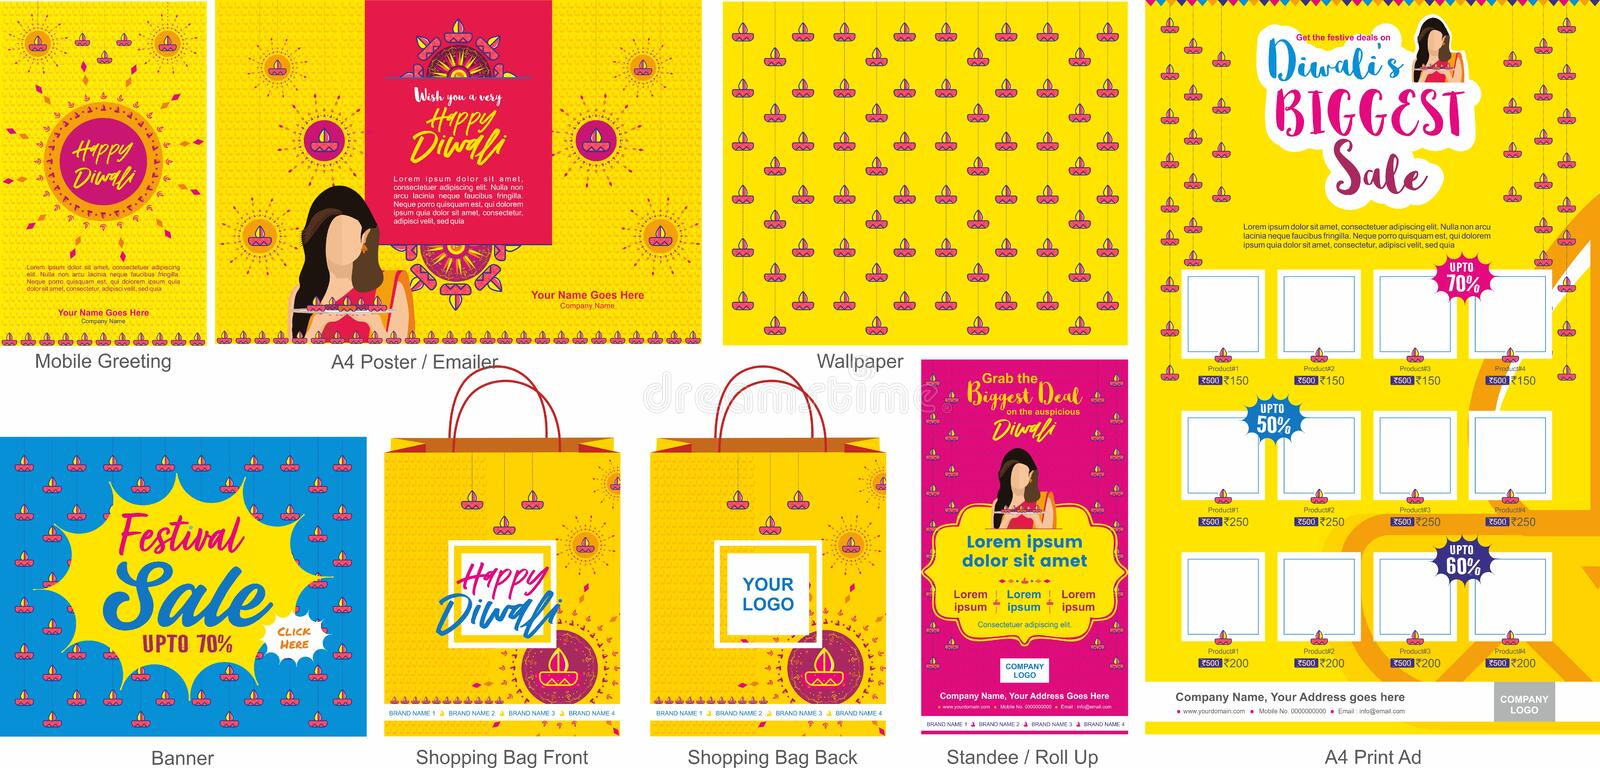 Diwali Festival Offer Big Sale Template with mobile greeting, mailer or flyer, wallpaper, print ad, Banner, Shopping bag design a. Nd roll ups. An Indian Hindu vector illustration